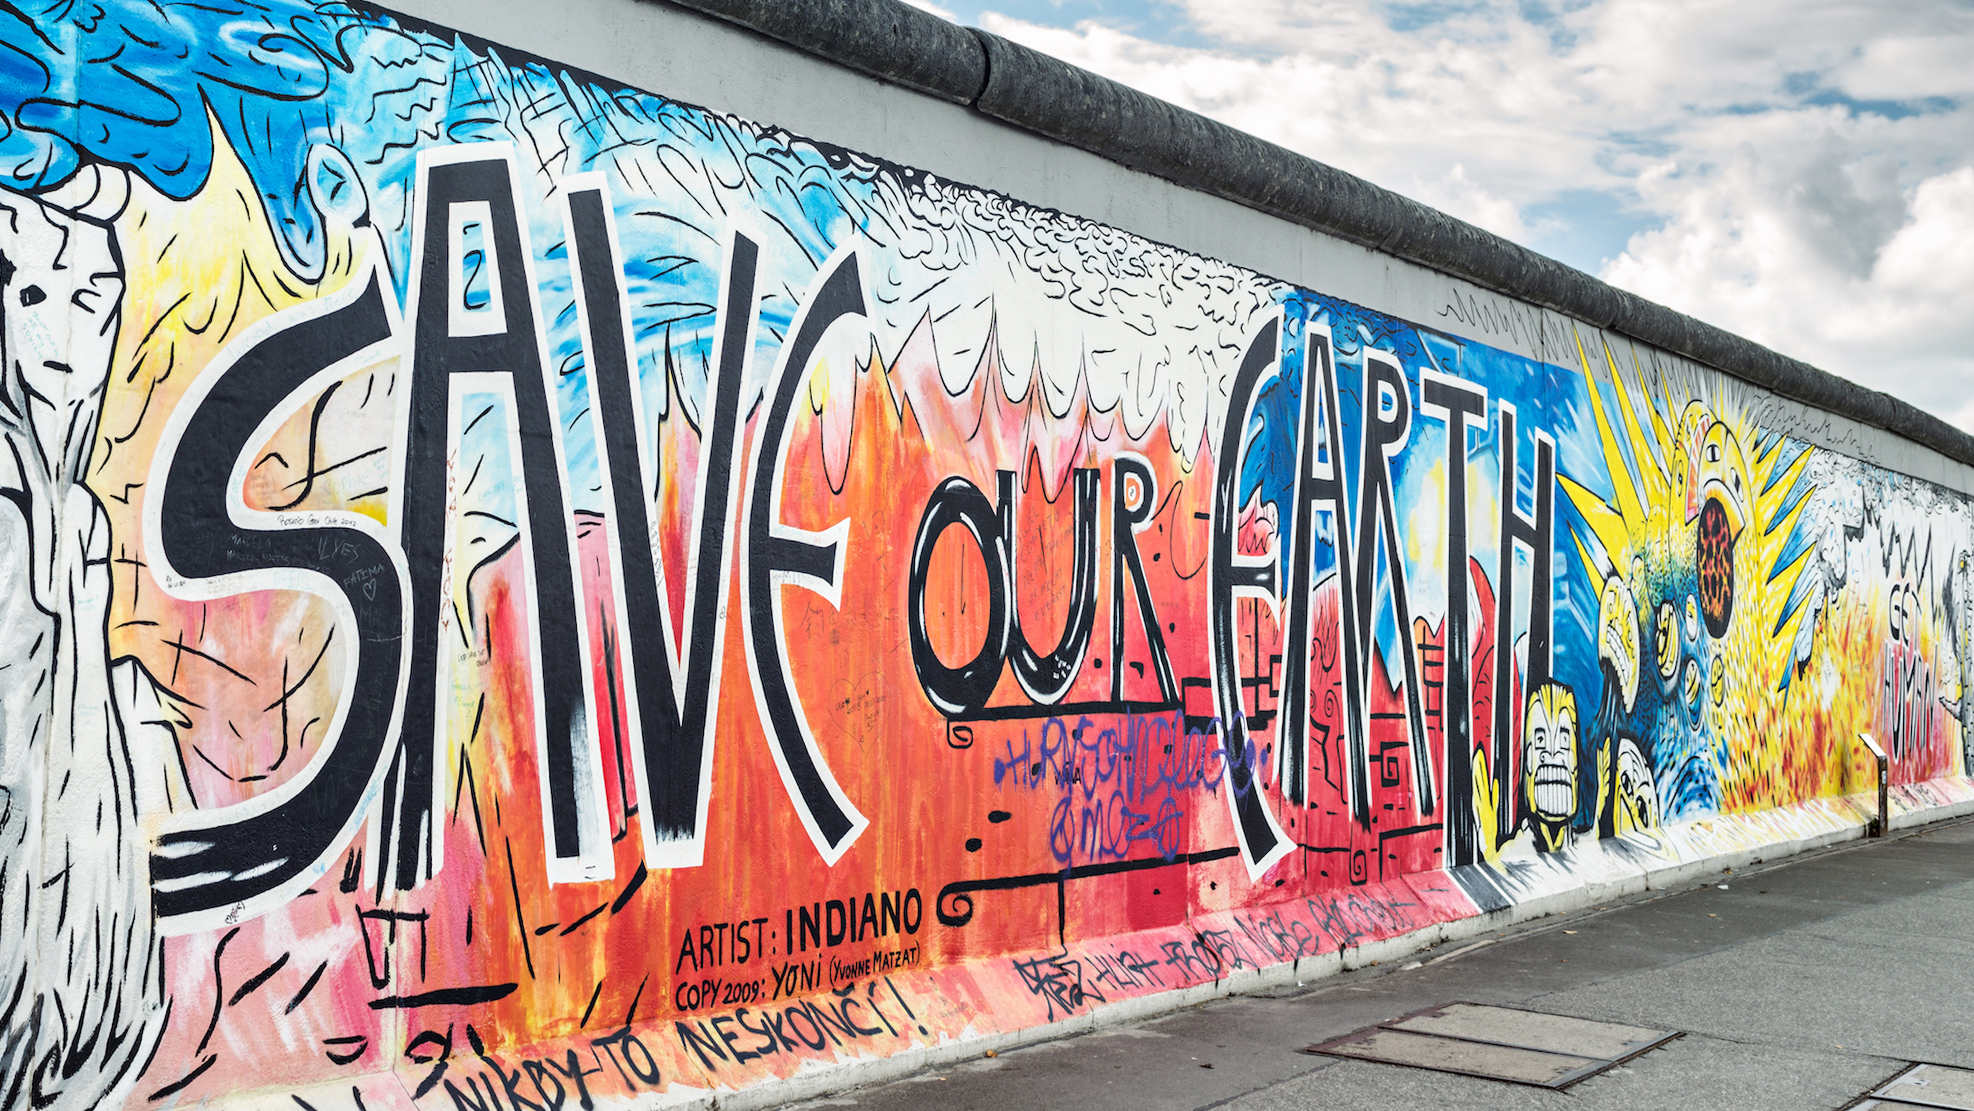 Artists Plan to Rebuild Germany's Berlin Wall this October